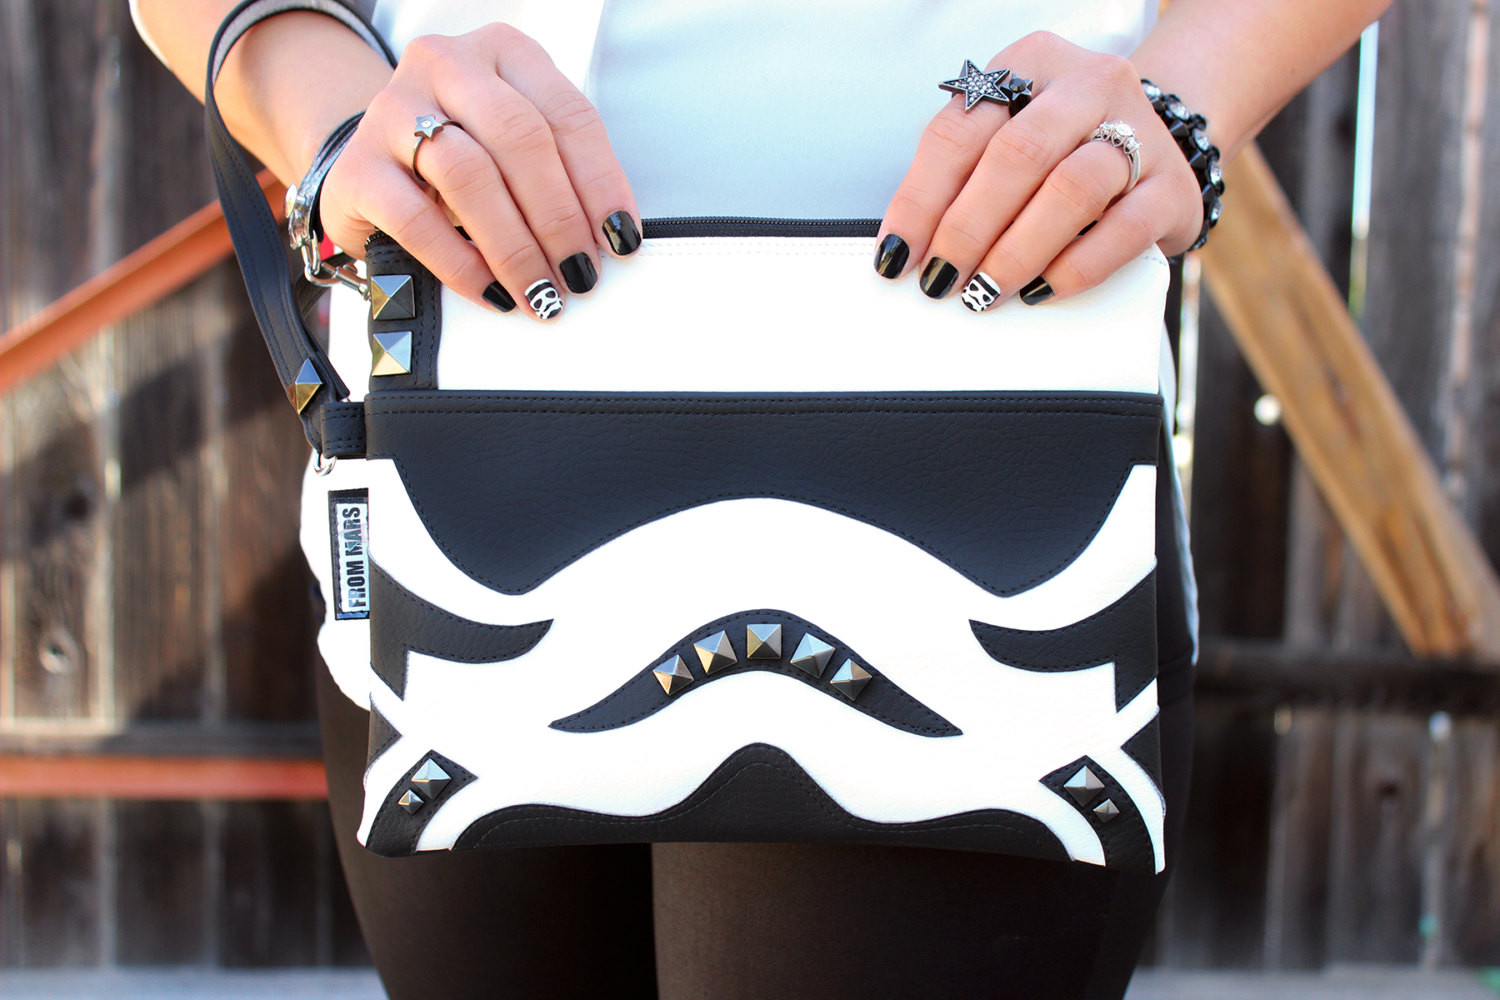 Sent From Mars - Stormtrooper inspired clutch bag with wristlet